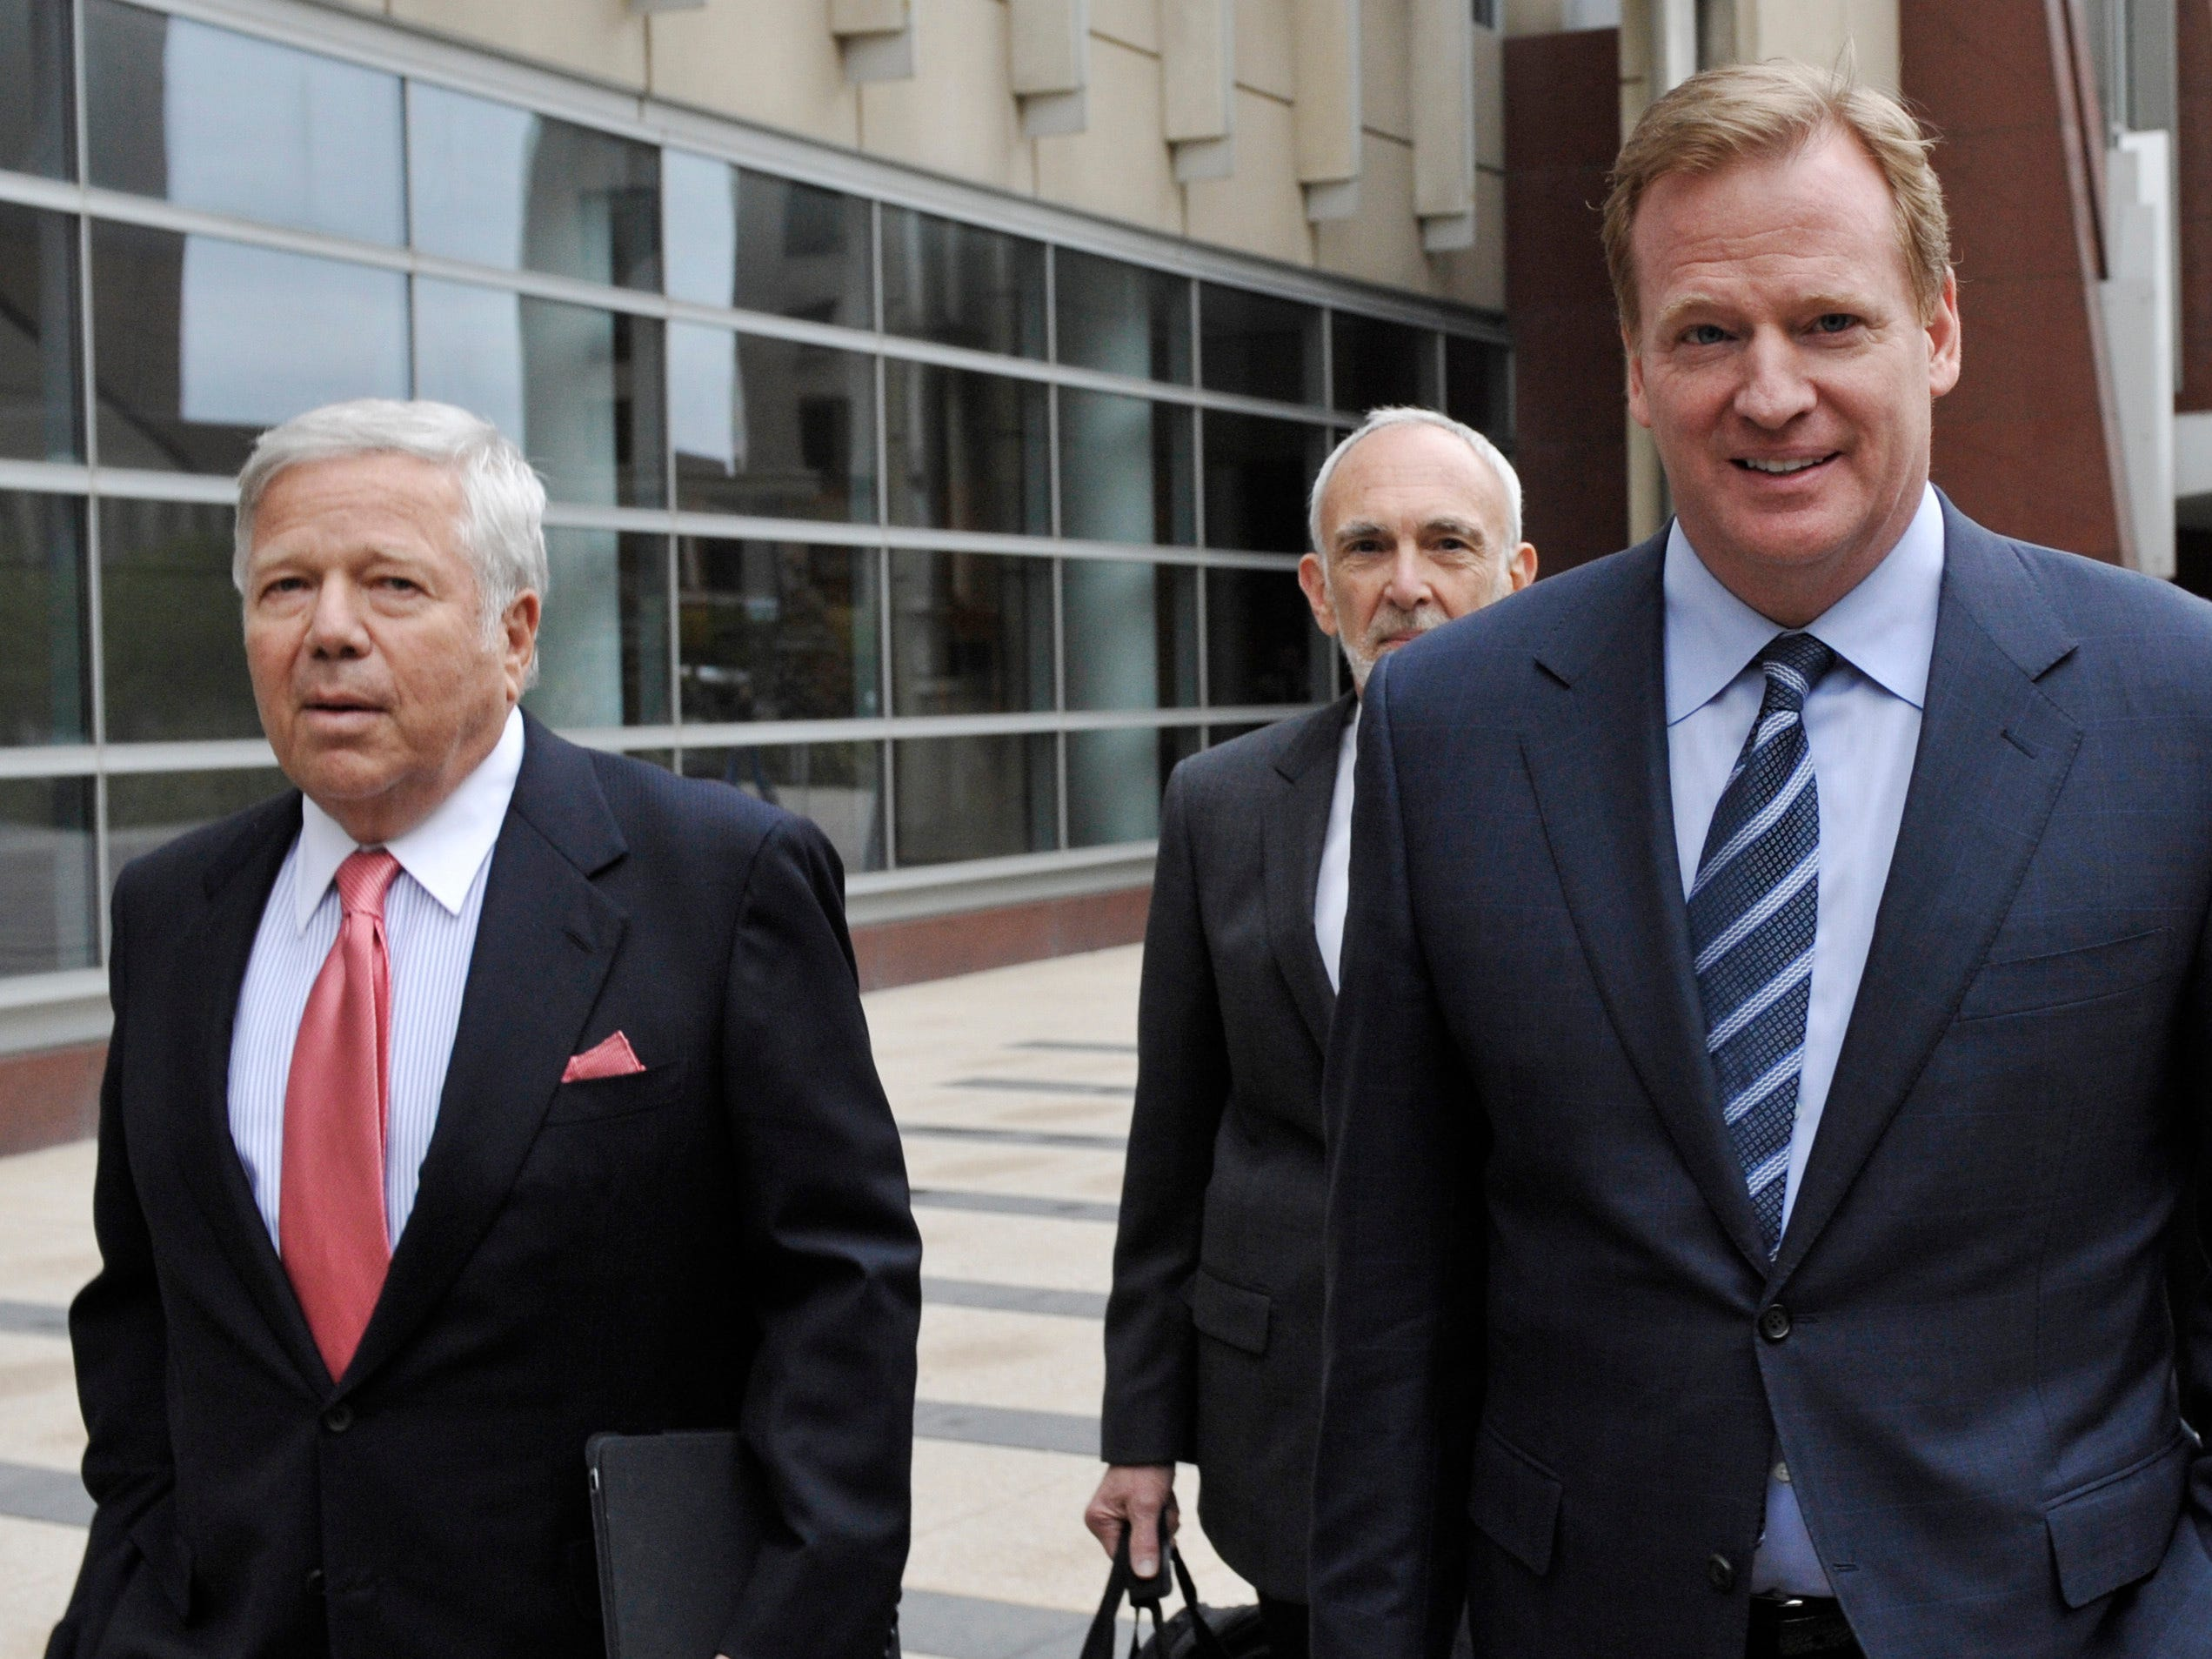 Kraft and Goodell leave a federal courthouse along with NFL outside attorney Bob Betterman, center, where the NFL and its locked-out players began court-ordered mediation.